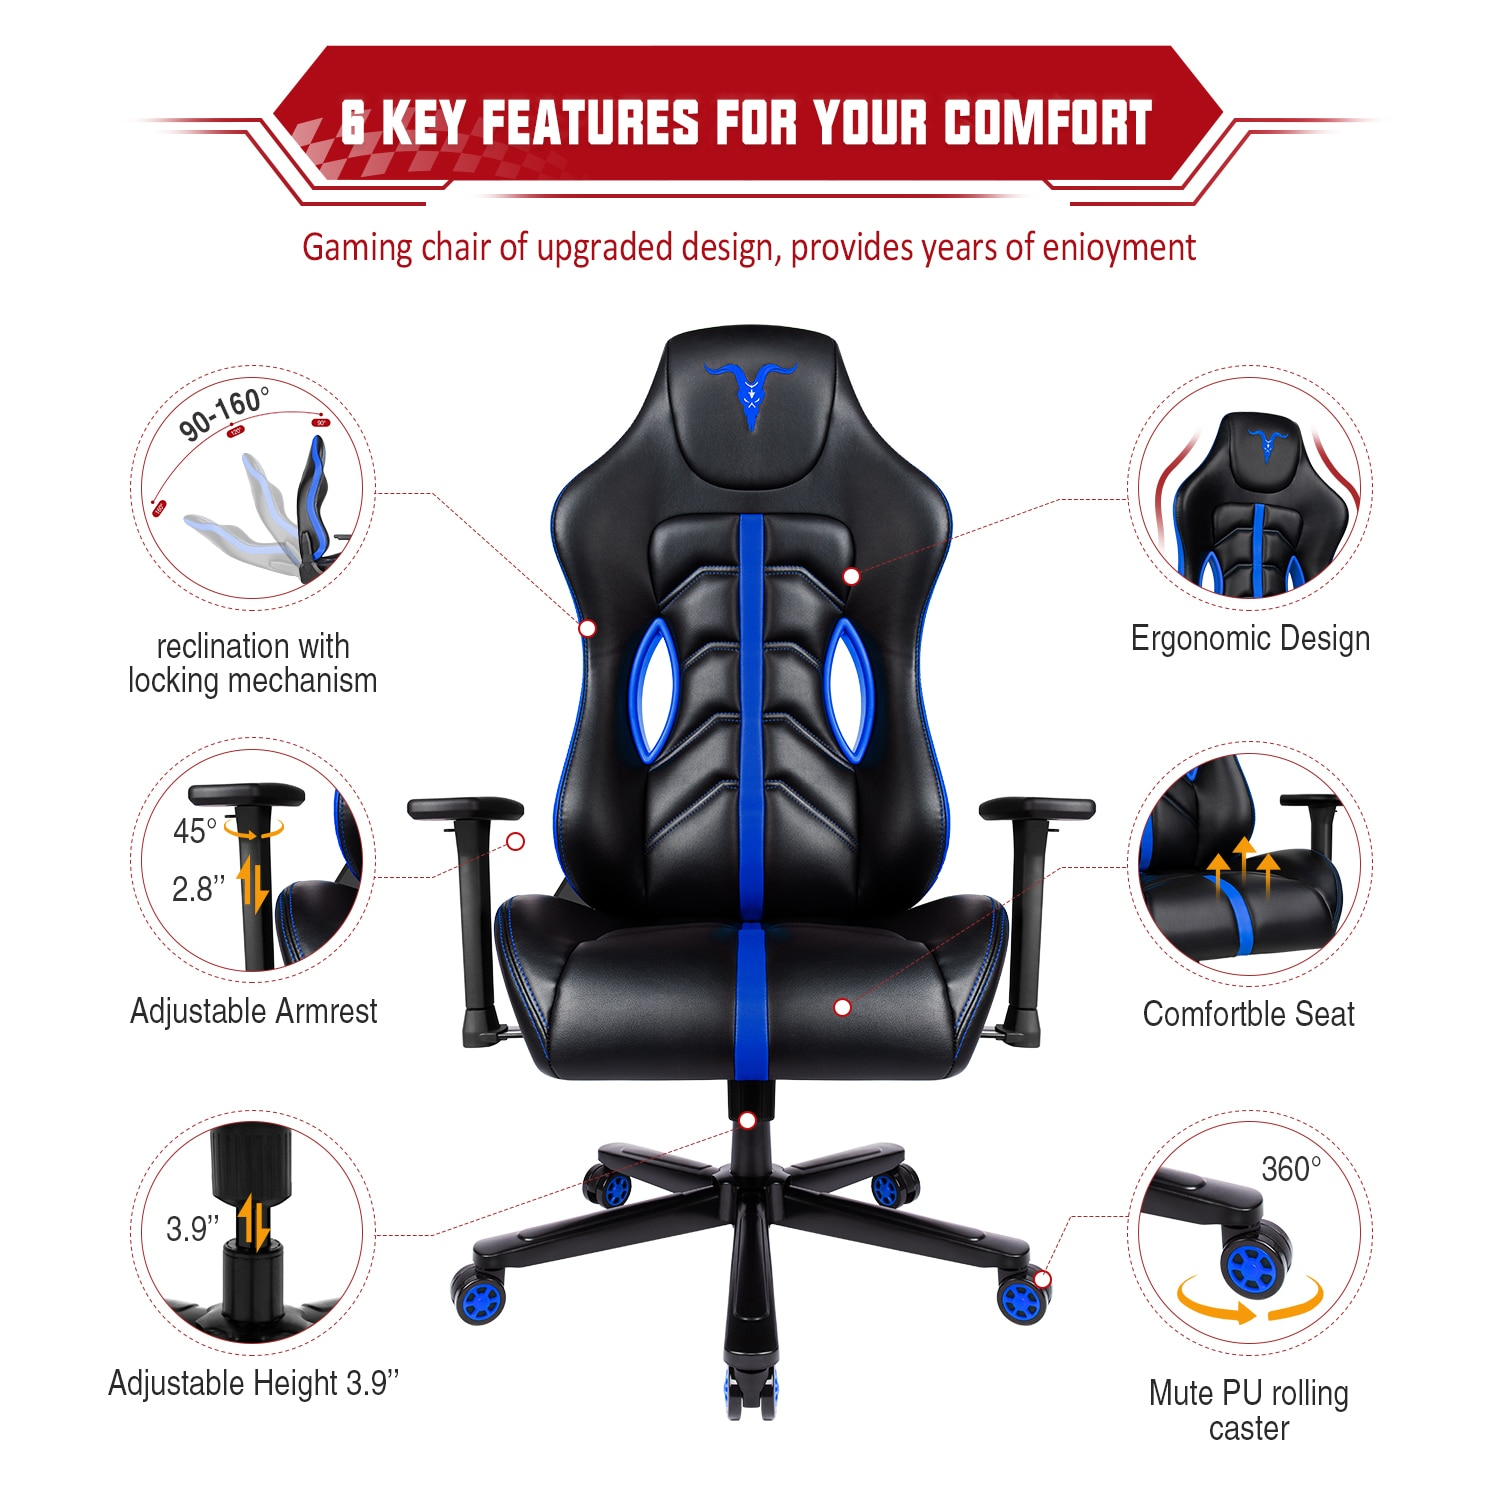 H418c23ee3b604707adac5faf5633bd26M - Furgle GPRO Office Chair Memory Foam Gaming Chair Adjustable Tilt Angle 4D Armrest Ergonomic High-Back Leather Computer Chairs